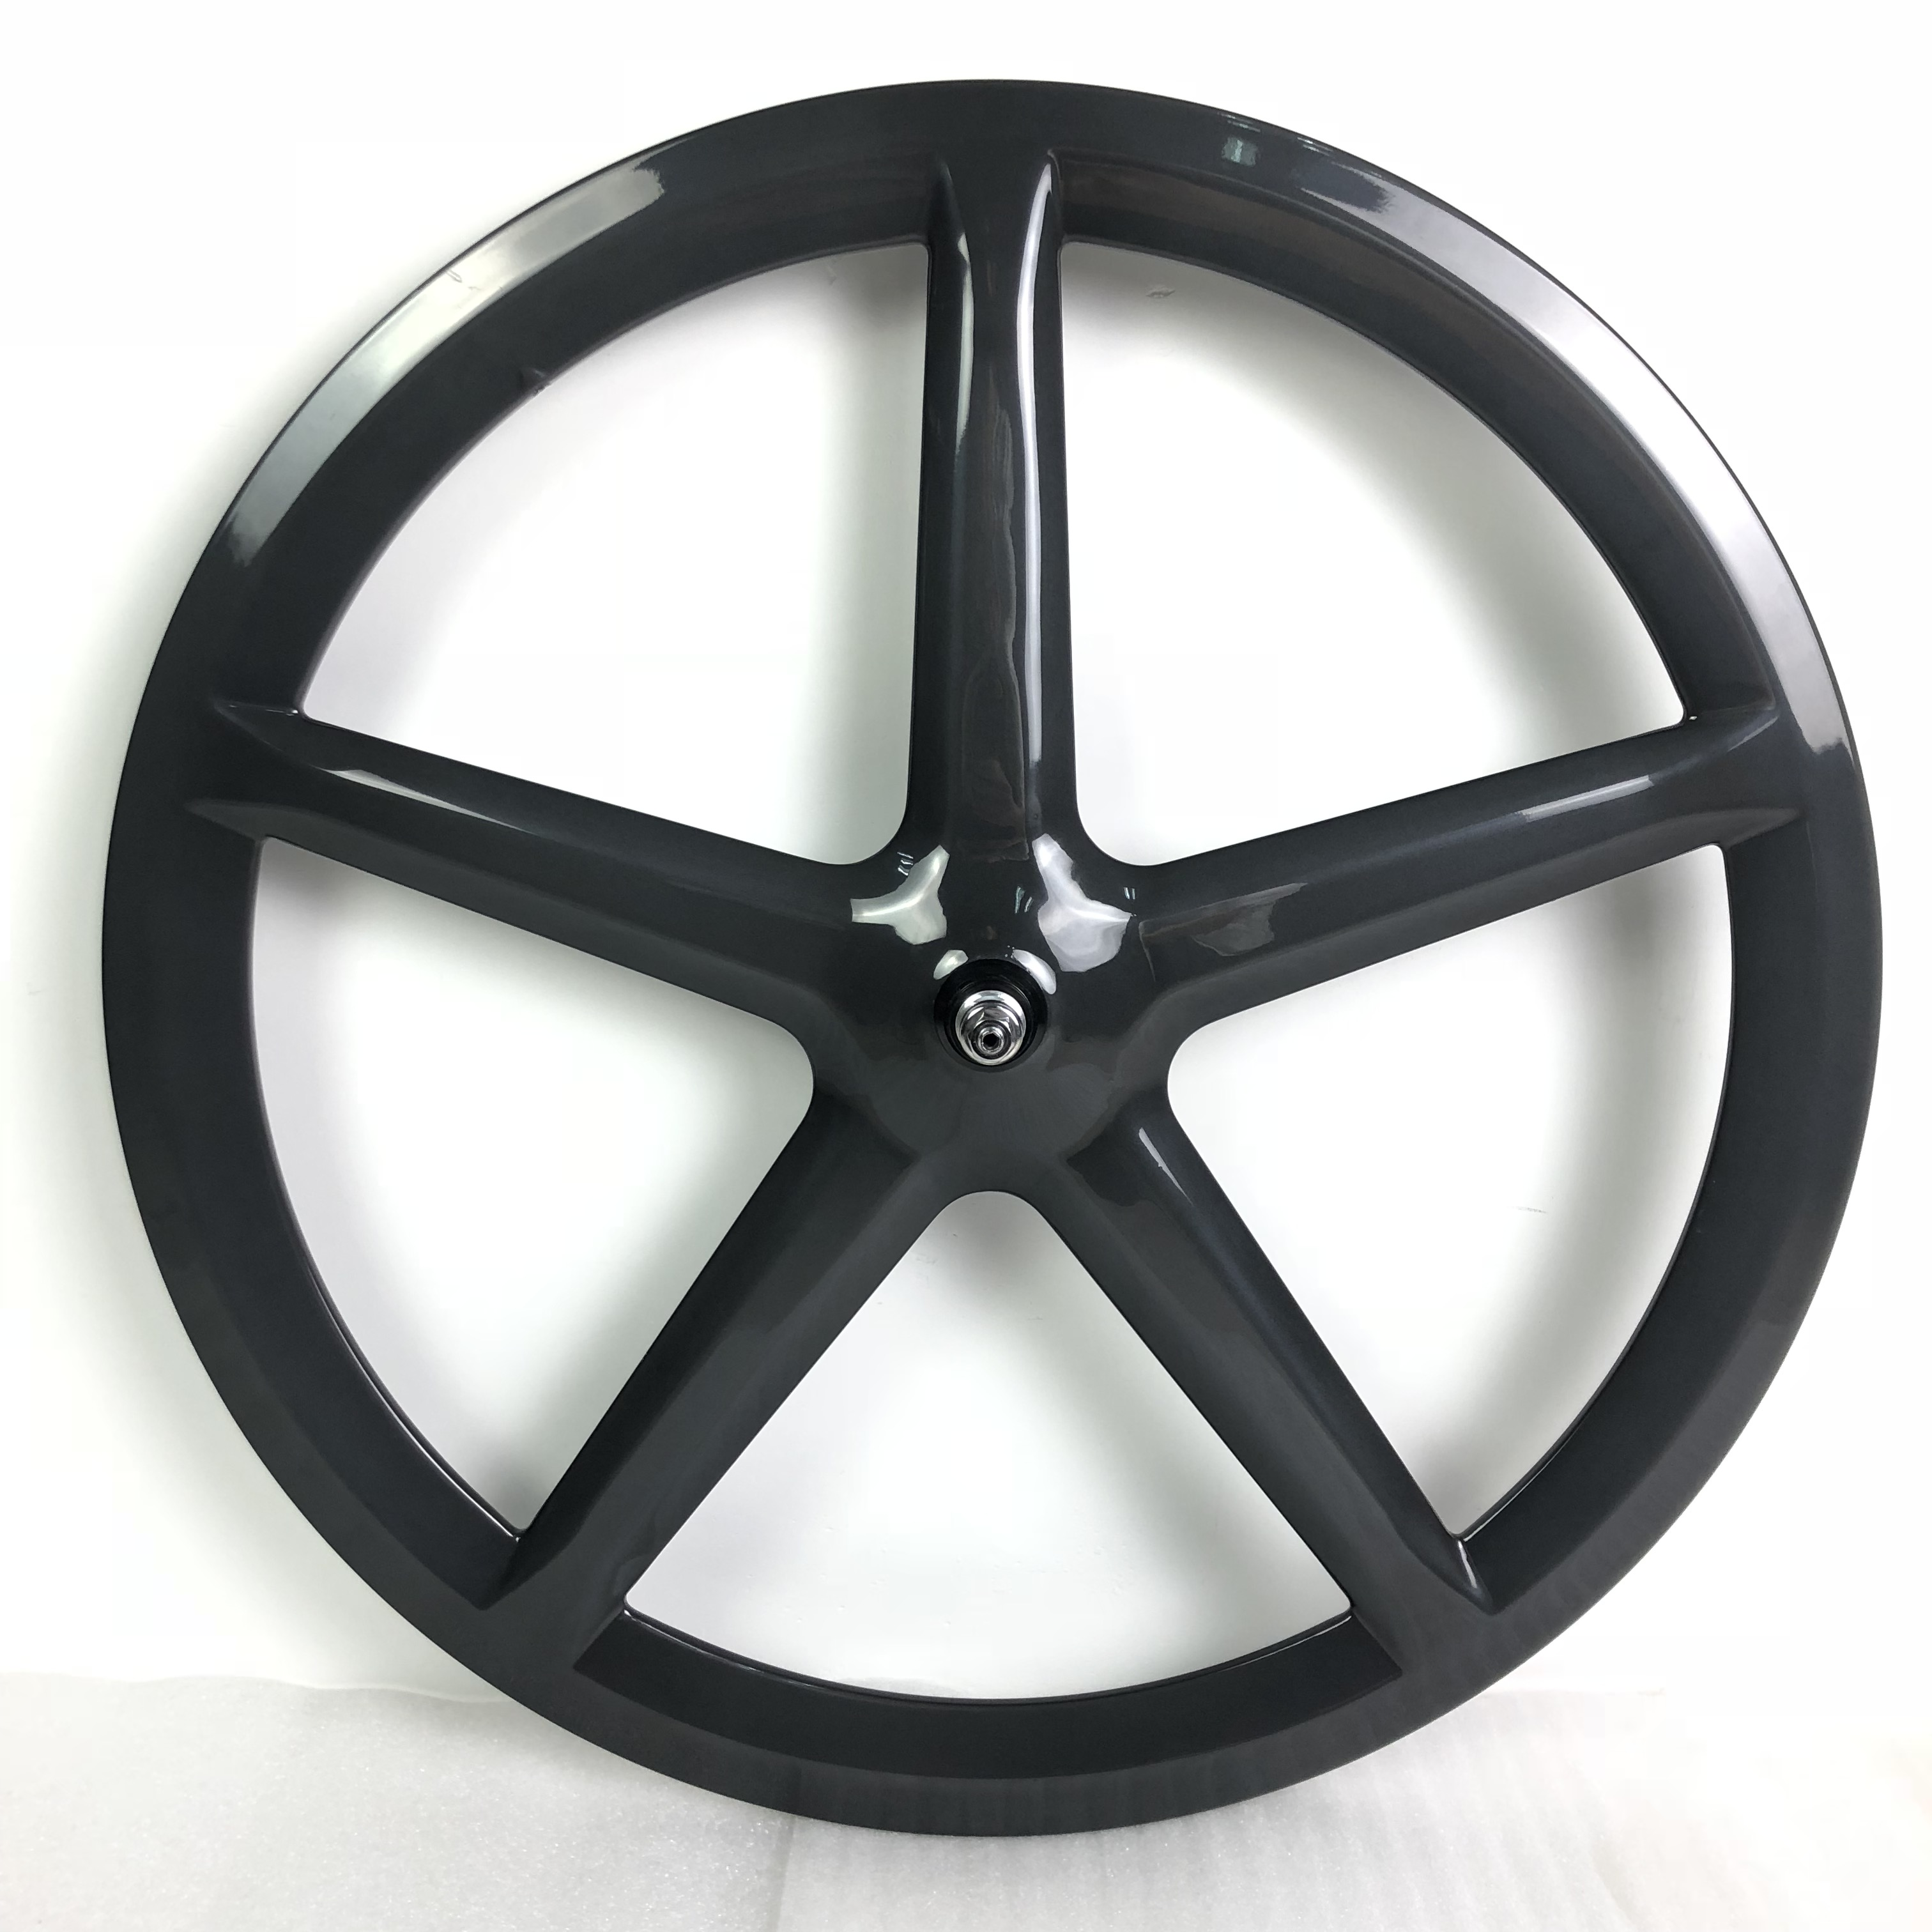 purchase in china for particular with hongfu carbon 5 spoke track bike bicycle wheel HF-FR005-F/R